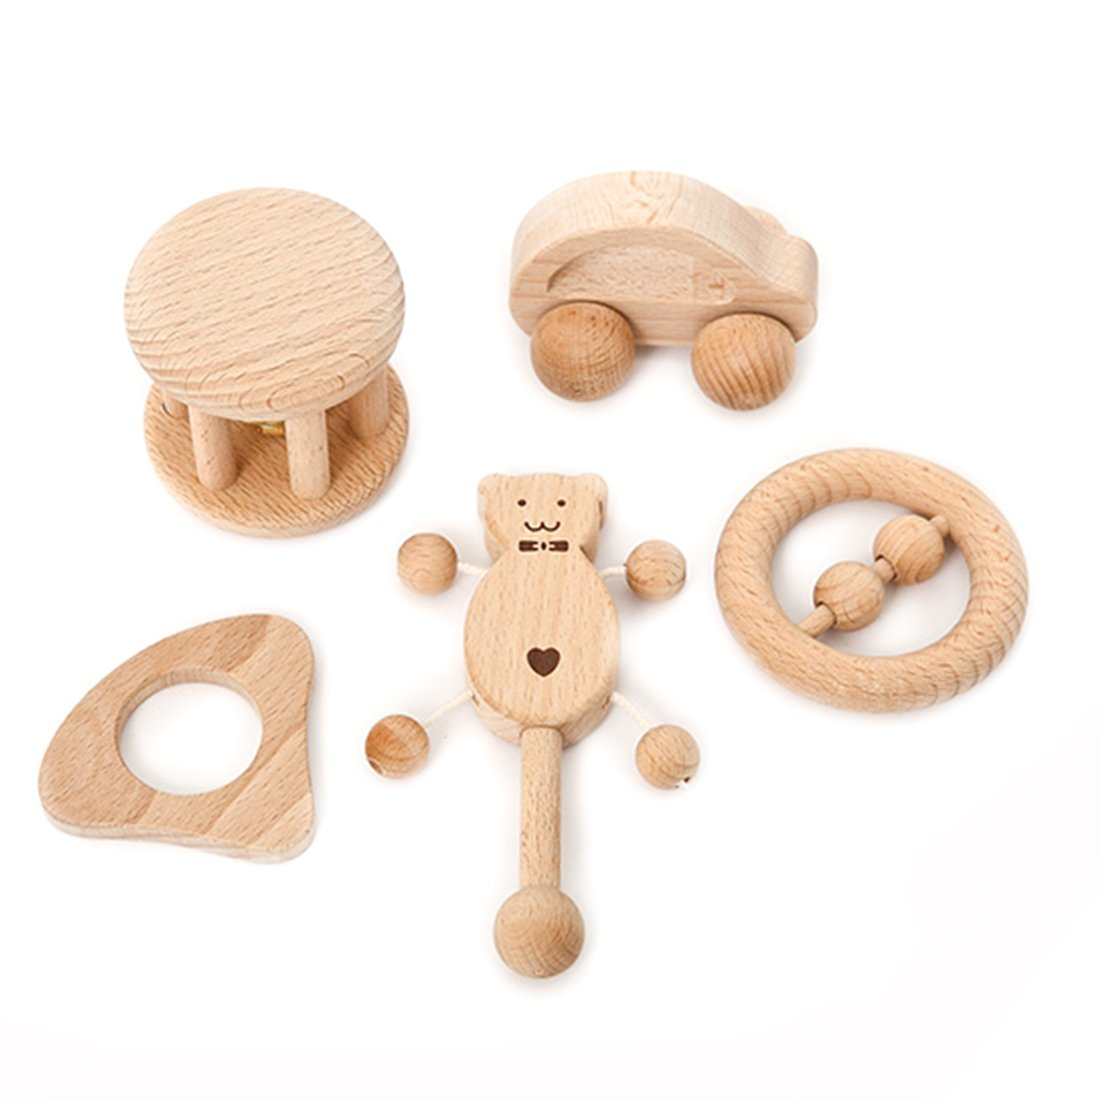 Amyster Puzzle Toys Intellectual Development of Children Montessori Toys Set Nursing Wooden Teether Rattles Baby Fun and Interesting Toy by Amyster